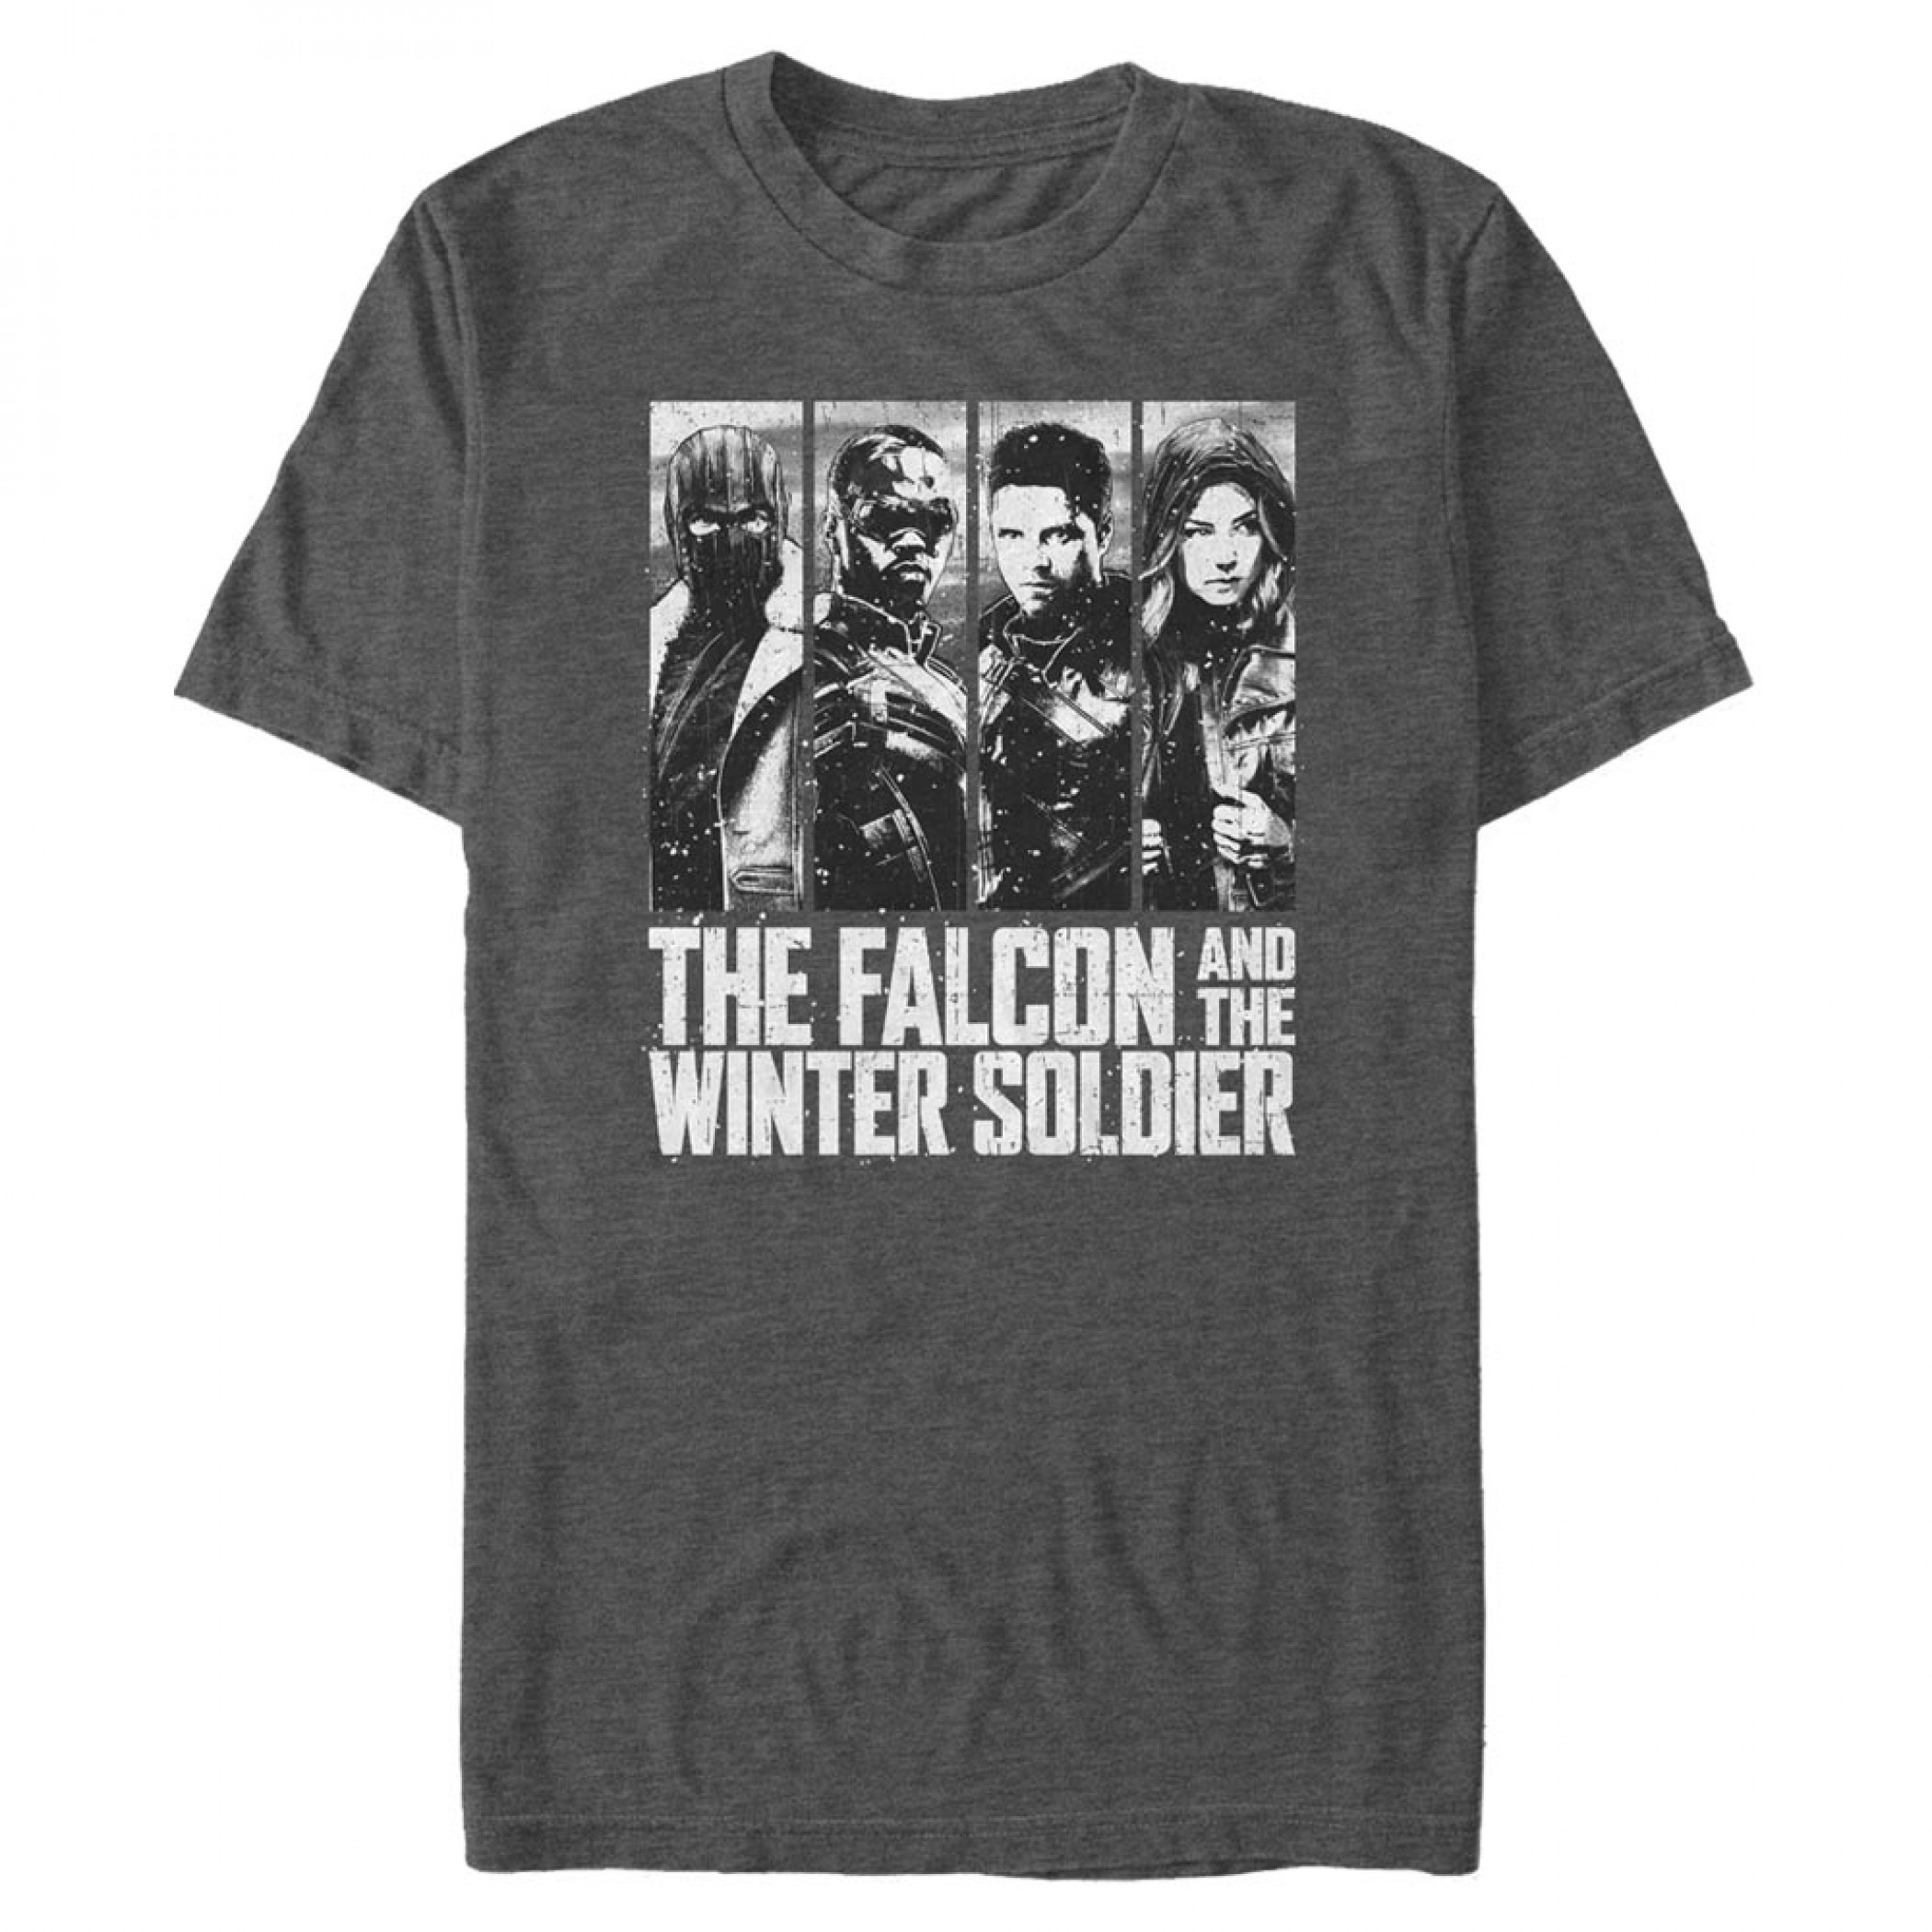 The Falcon and The Winter Solider Characters T-Shirt